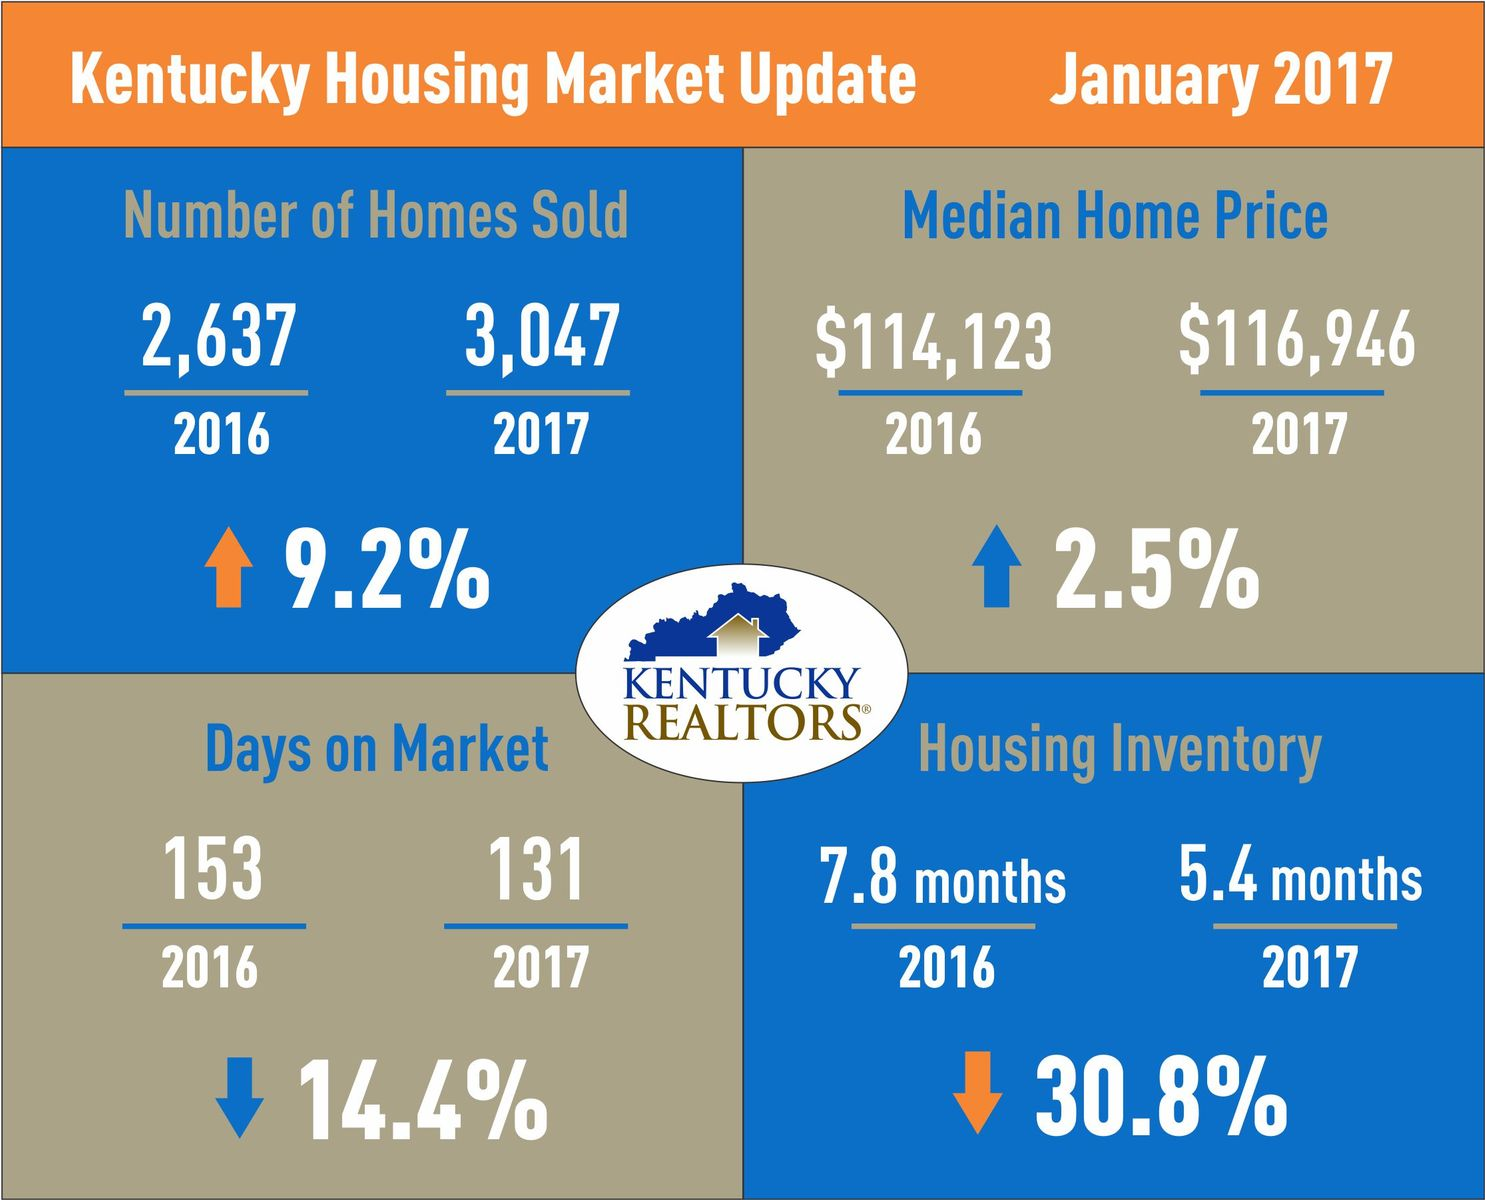 Kentucky Housing Market Update January 2017